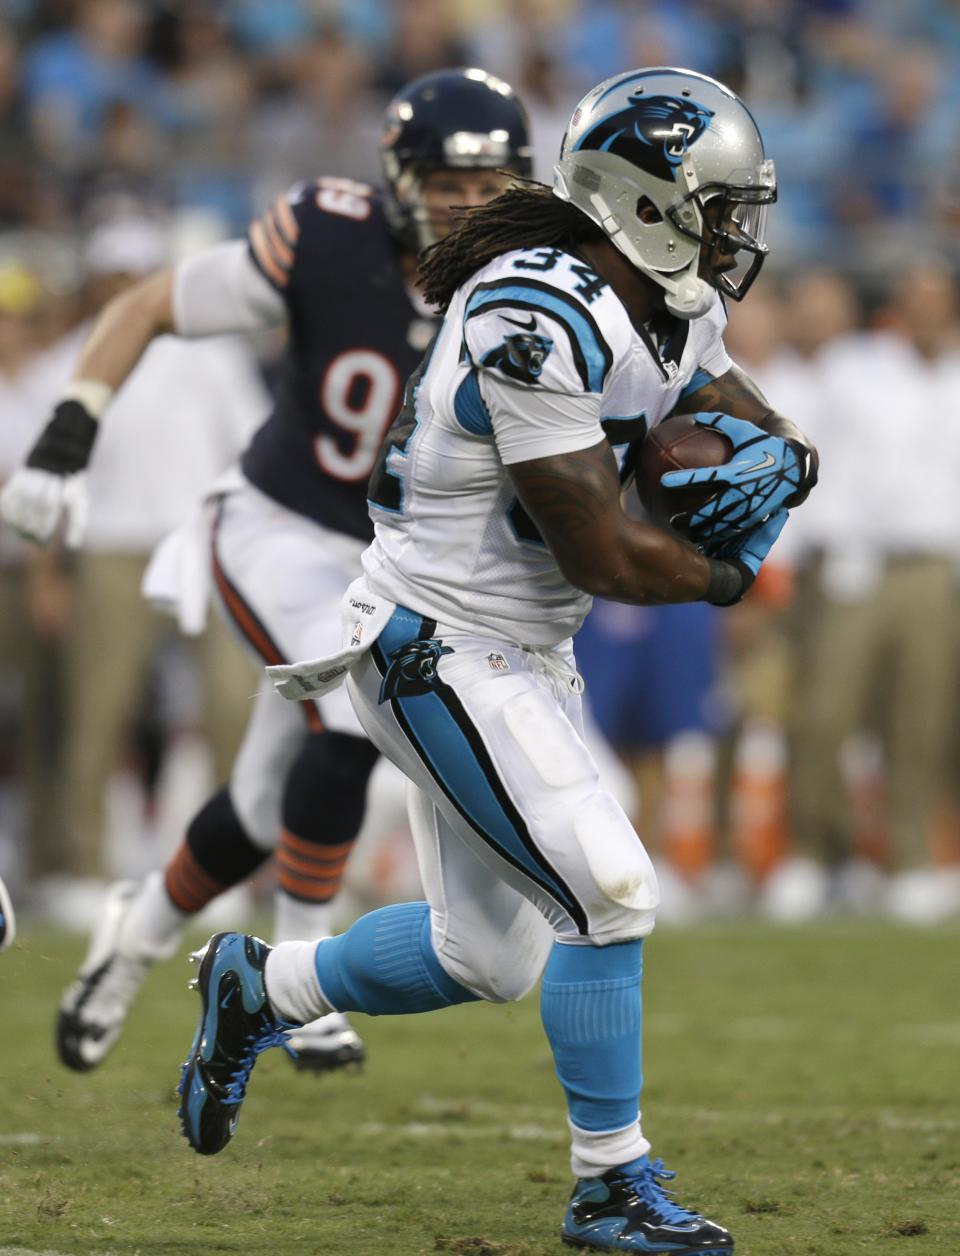 Bears defense shines in 24-17 loss to Panthers